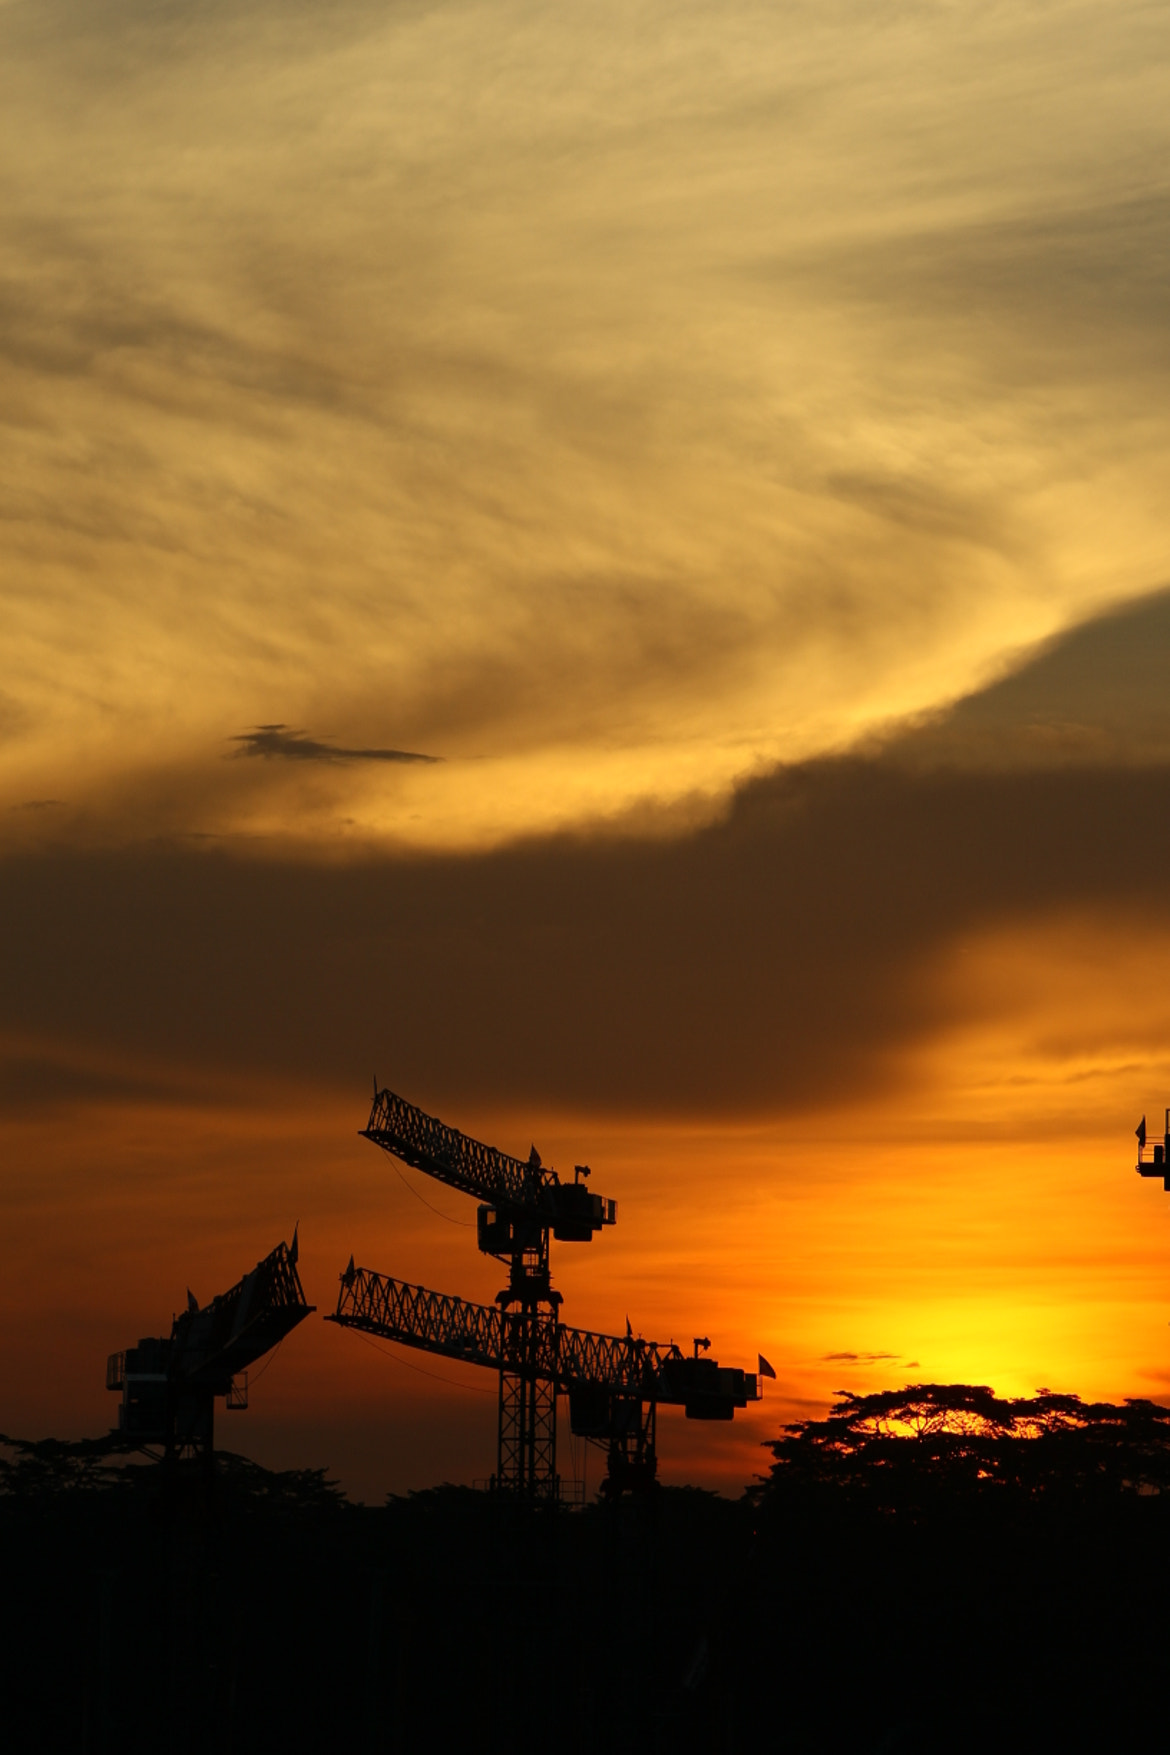 Photograph Cranes in the sky by Gabriel Chua on 500px